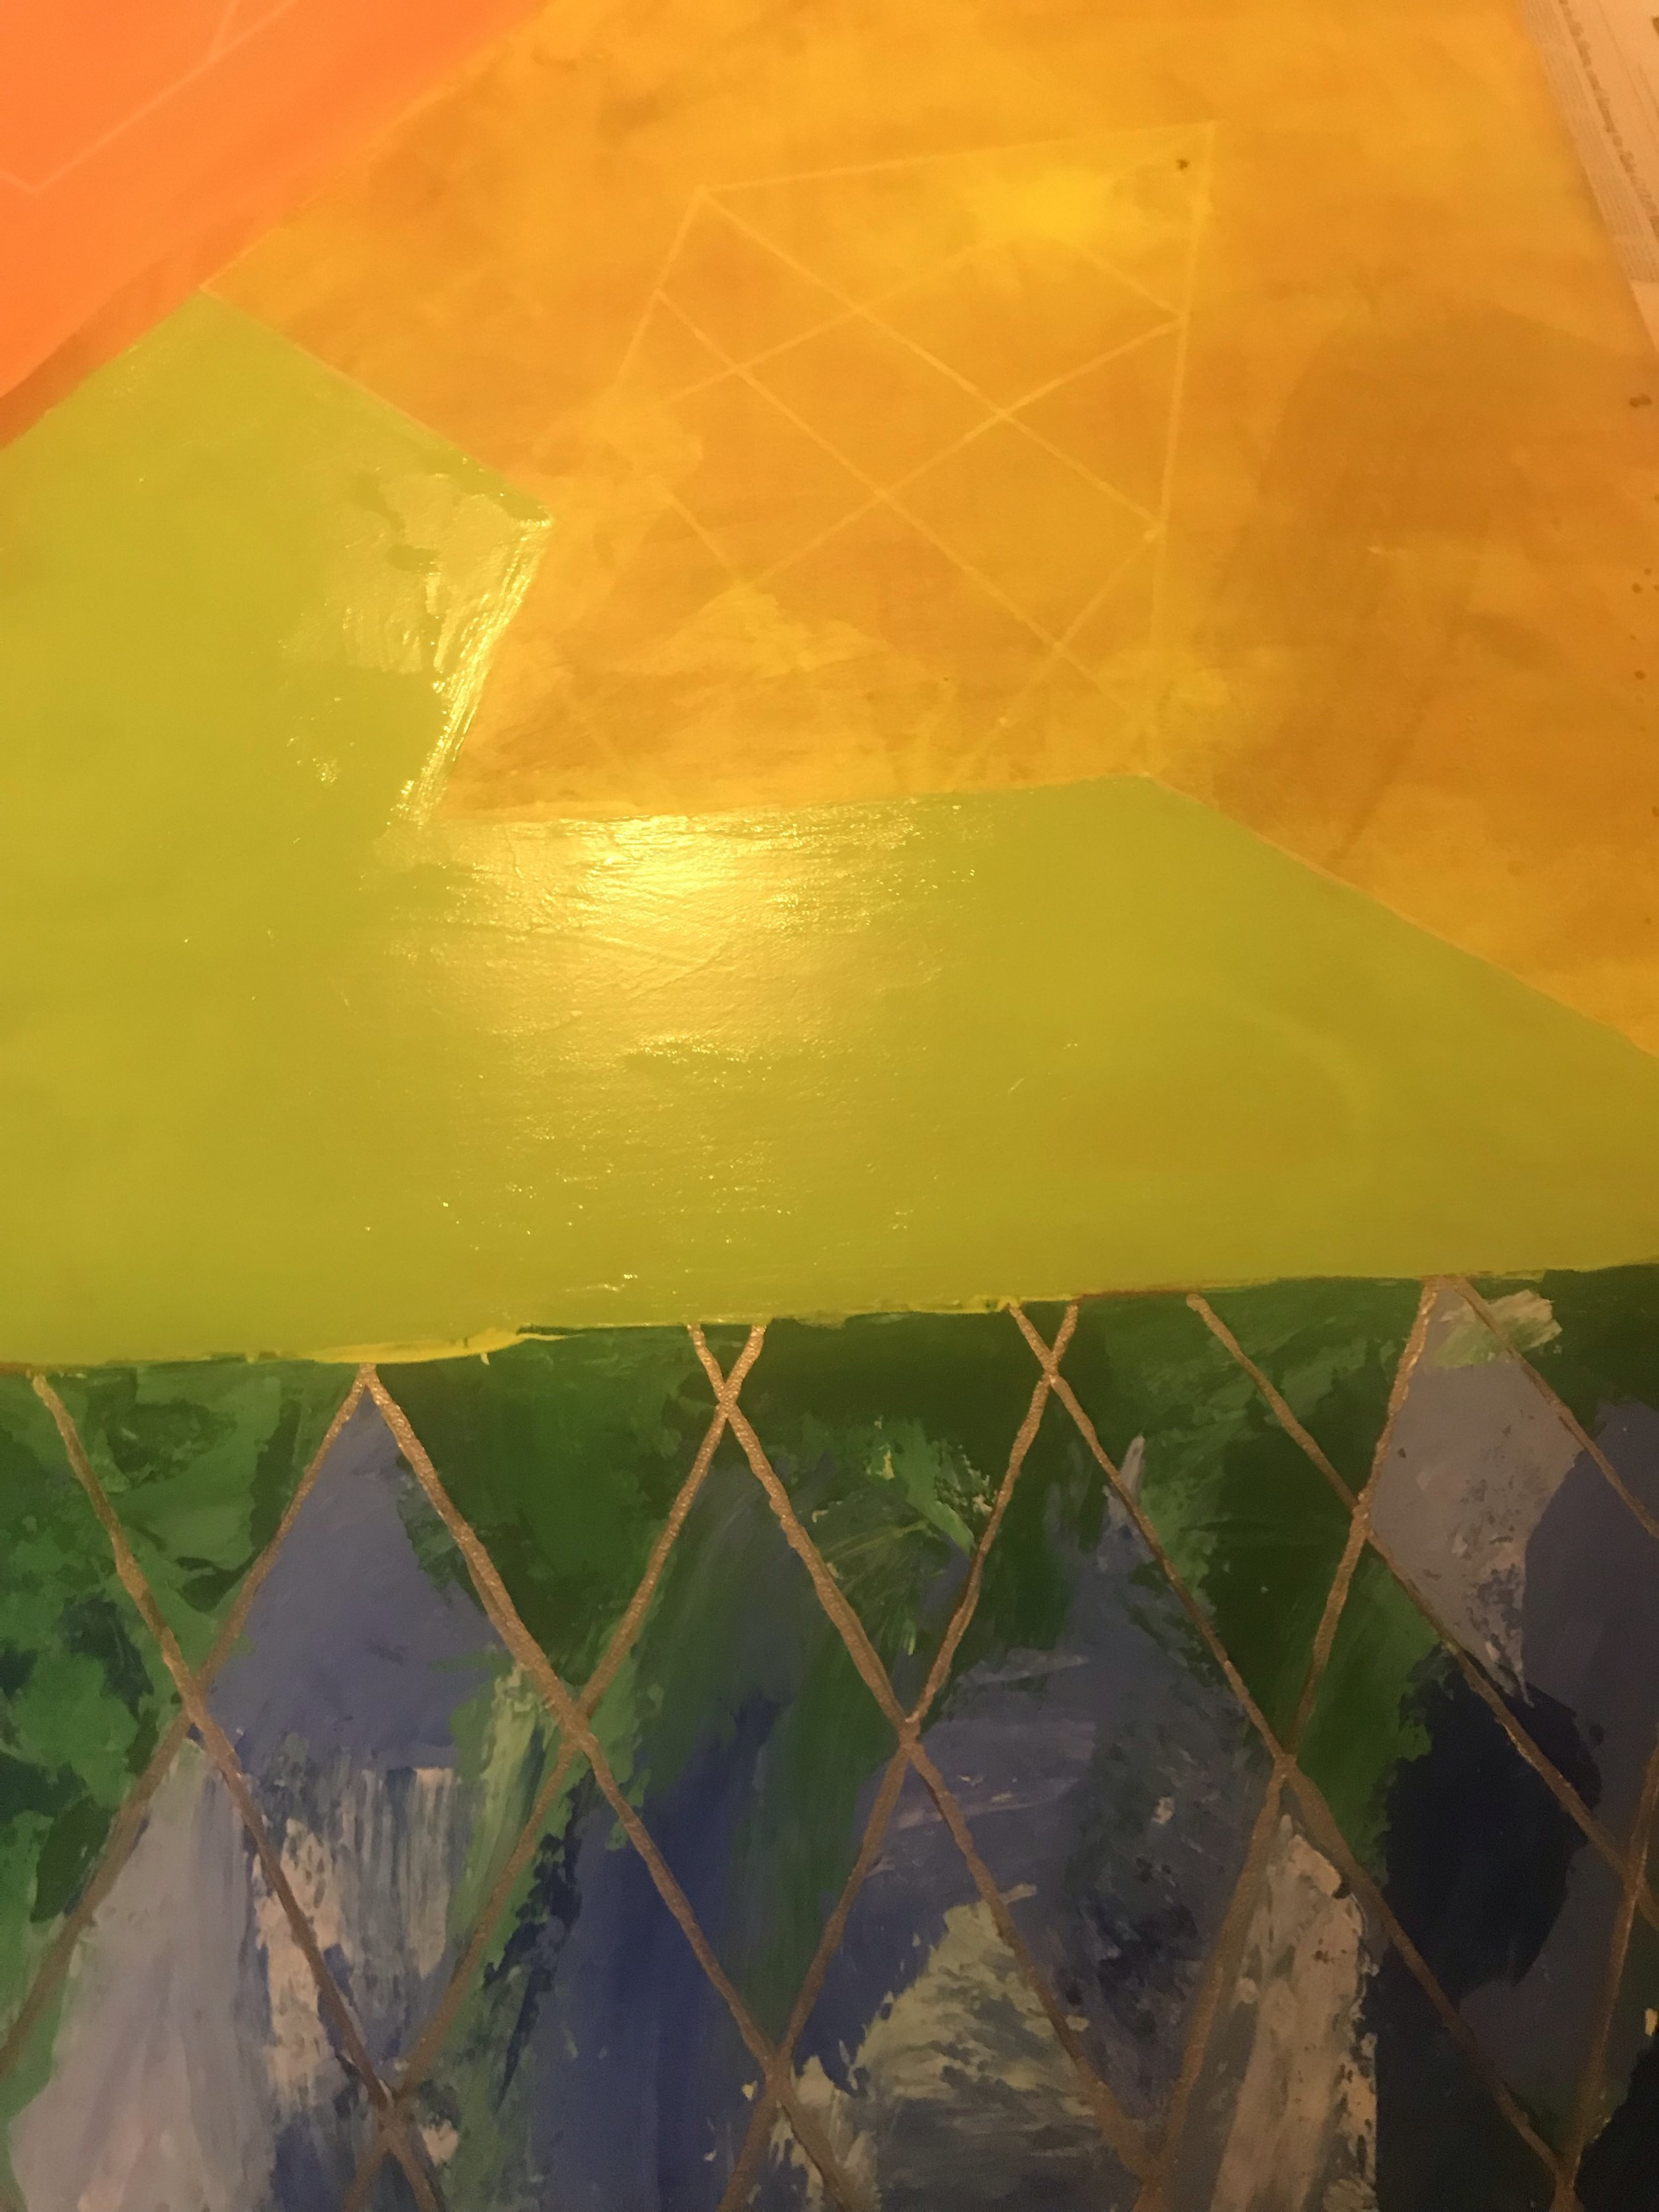 """Detail, unfinished painting, """"Stained Glass Stairs"""". Photo by author, November 29, 2018."""